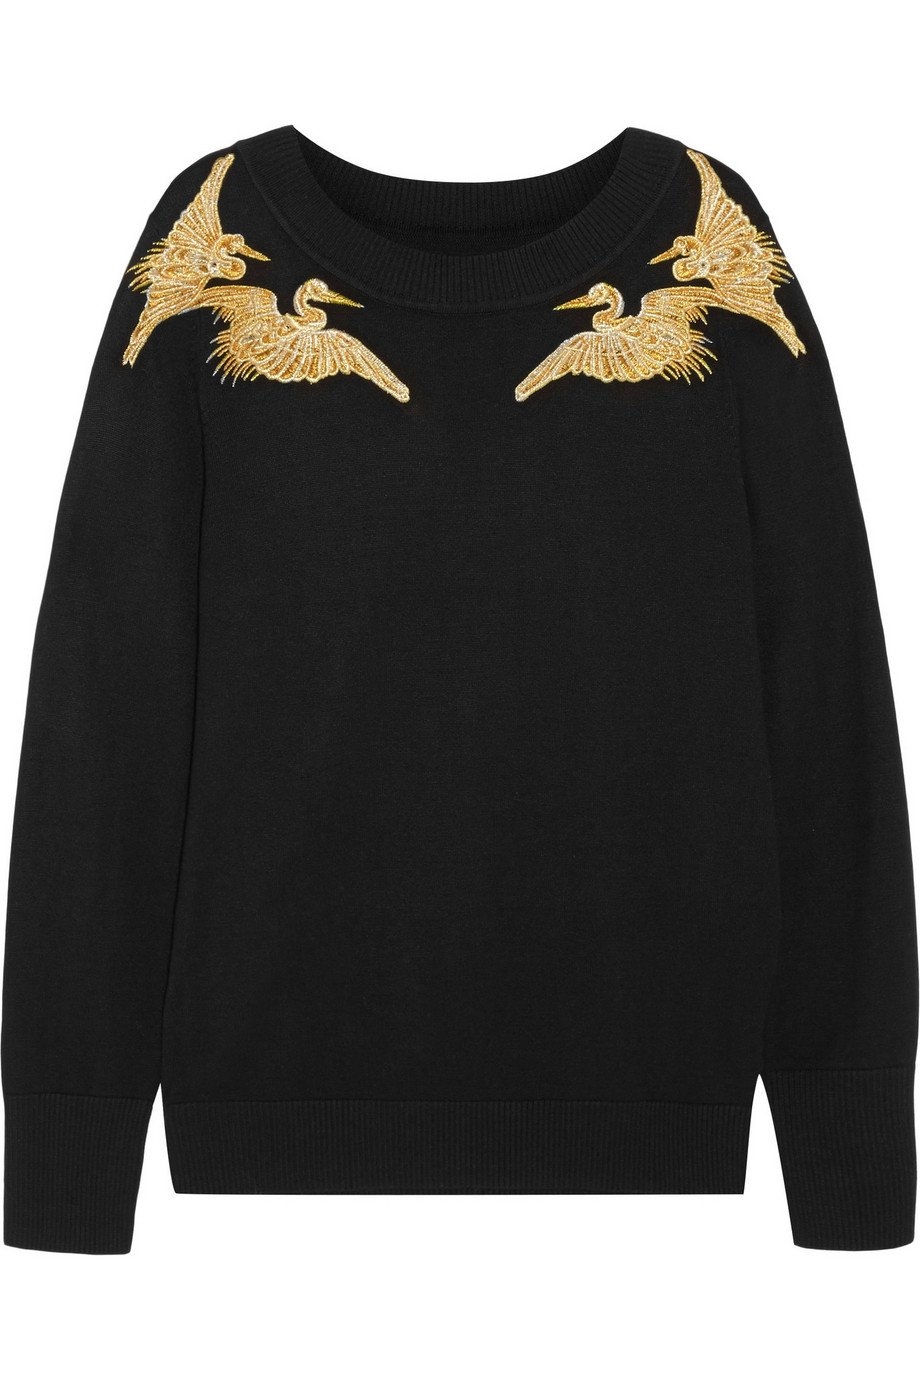 Altuzarra For Target Black Sweater + Gold Embroidered Herons / Sz S